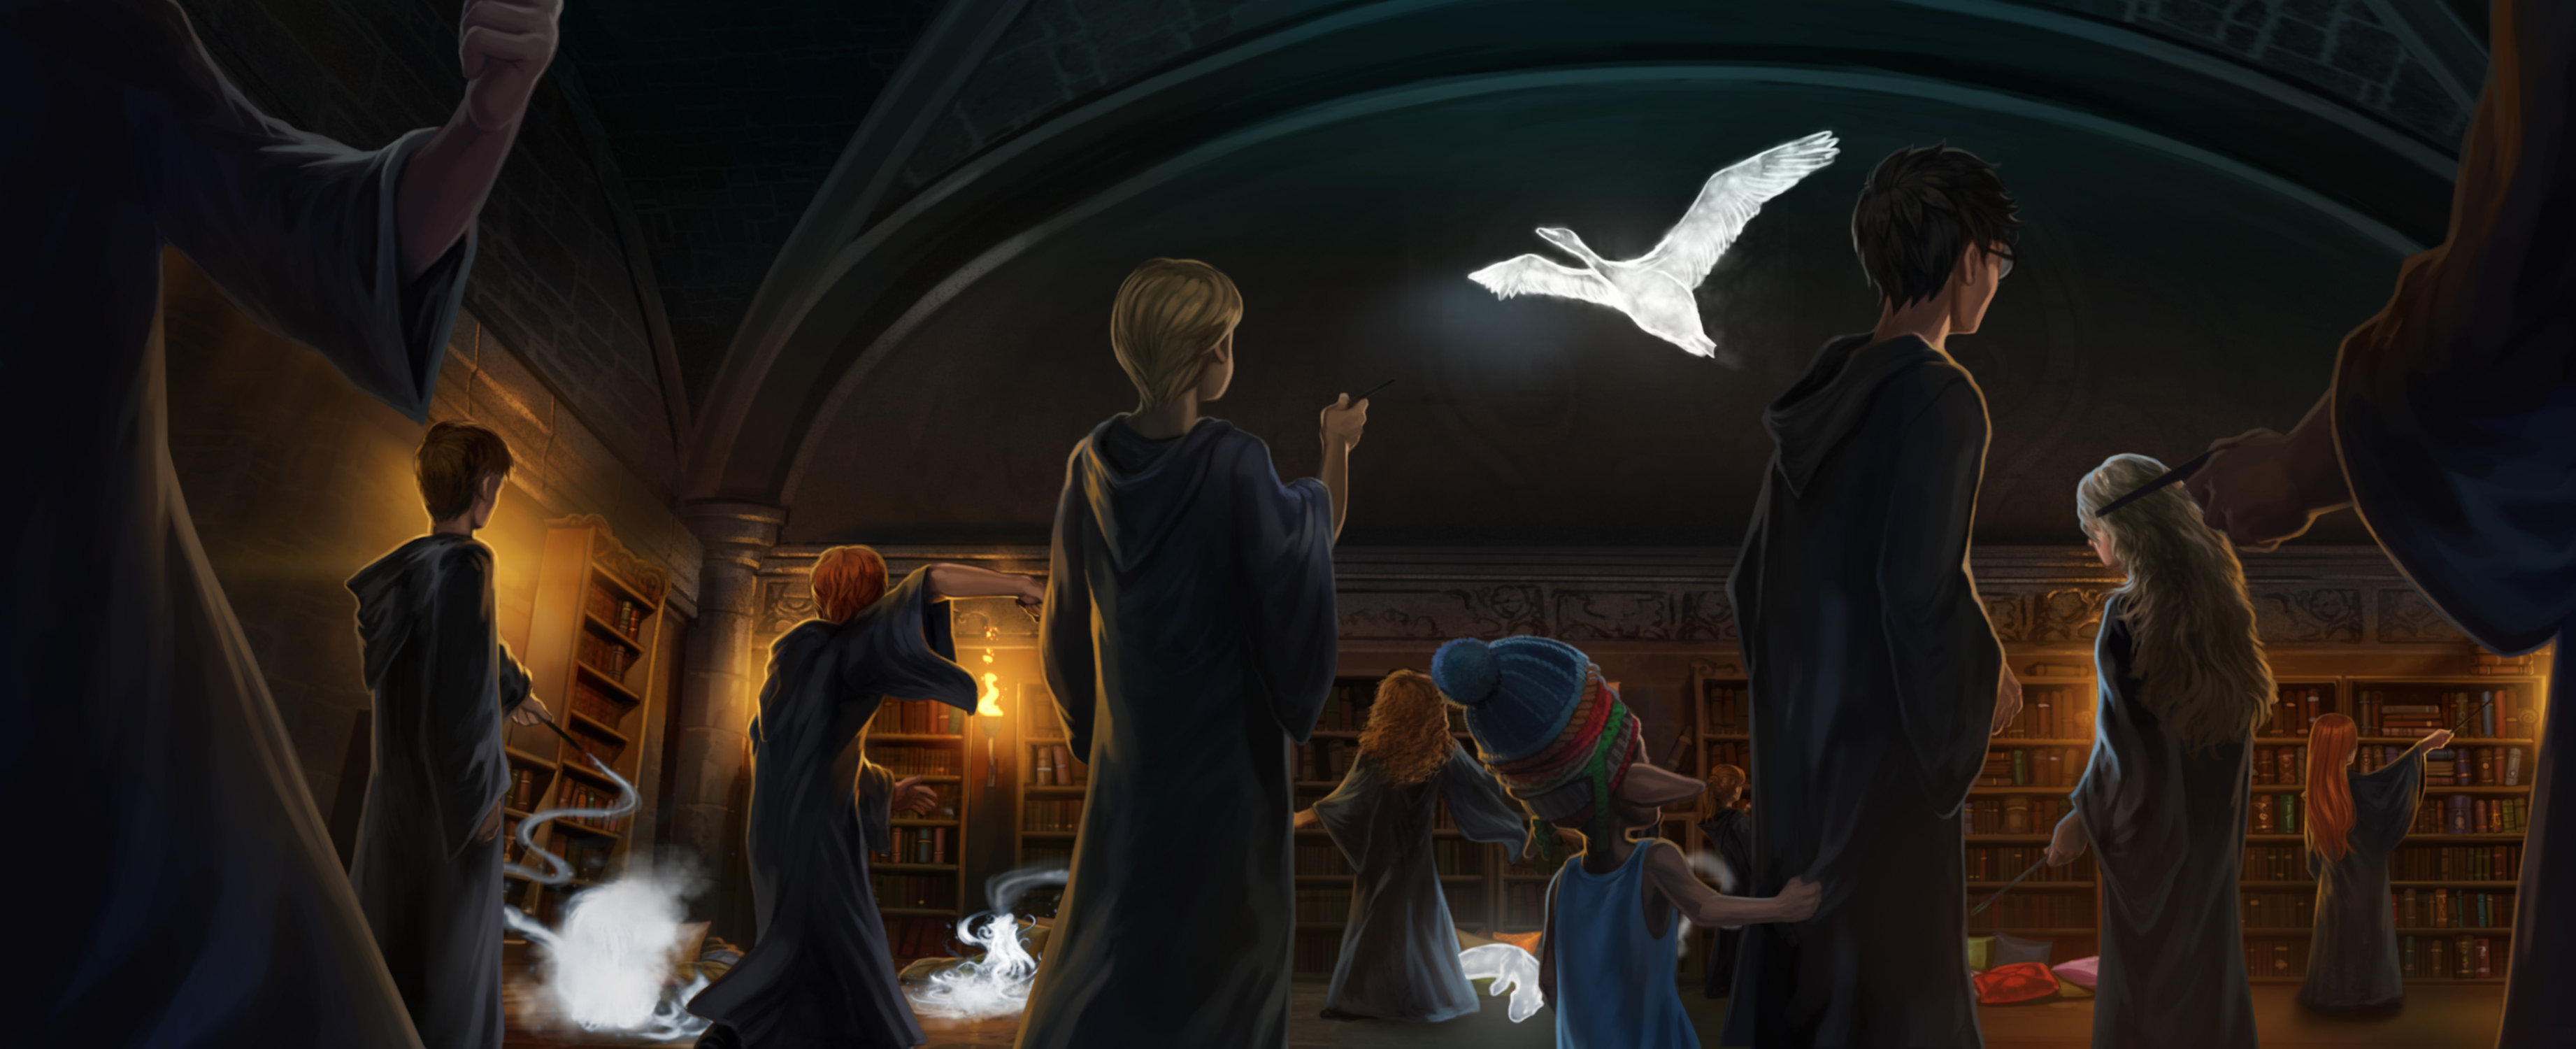 Harry teaches Dumbledore's Army how to do the Patronus spell.